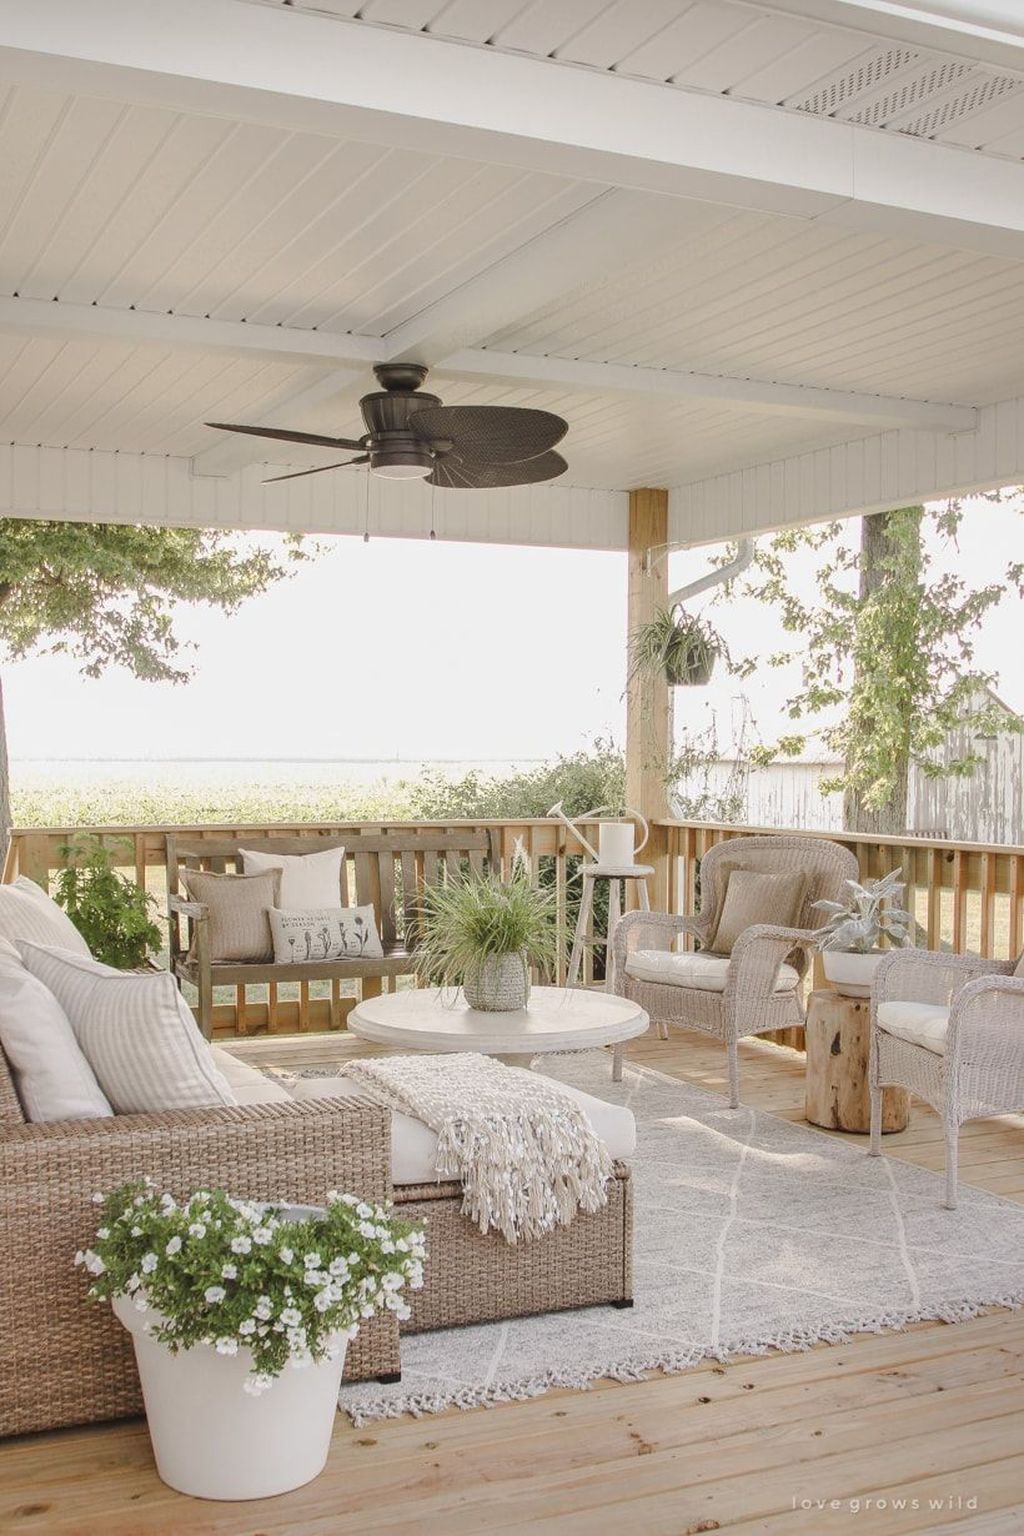 Wonderful Backyard Patio Designs Ideas Perfect For Summertime 11